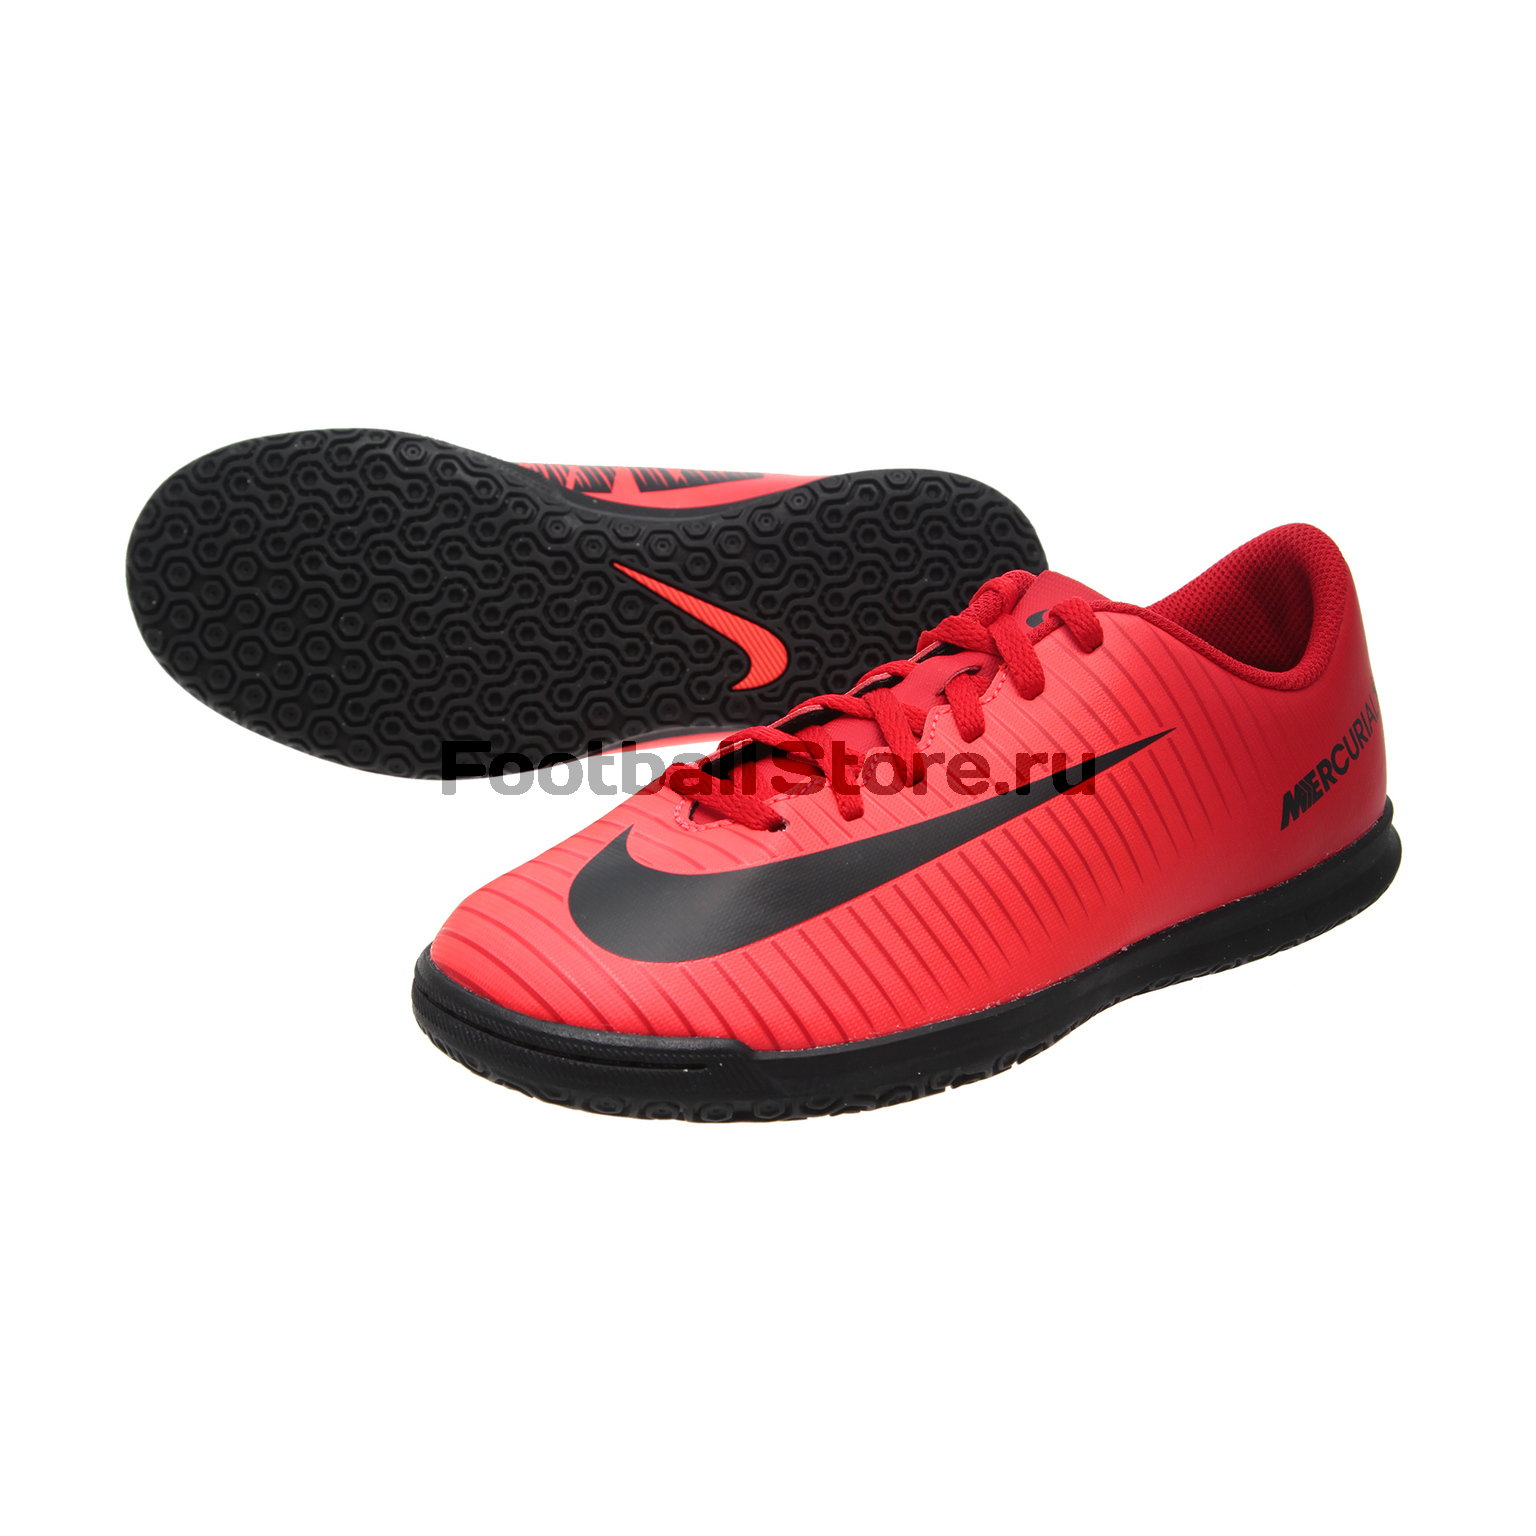 Обувь для зала Nike JR MercurialX  Vortex III IC 831953-616 бутсы nike бутсы jr mercurialx vapor xi ic